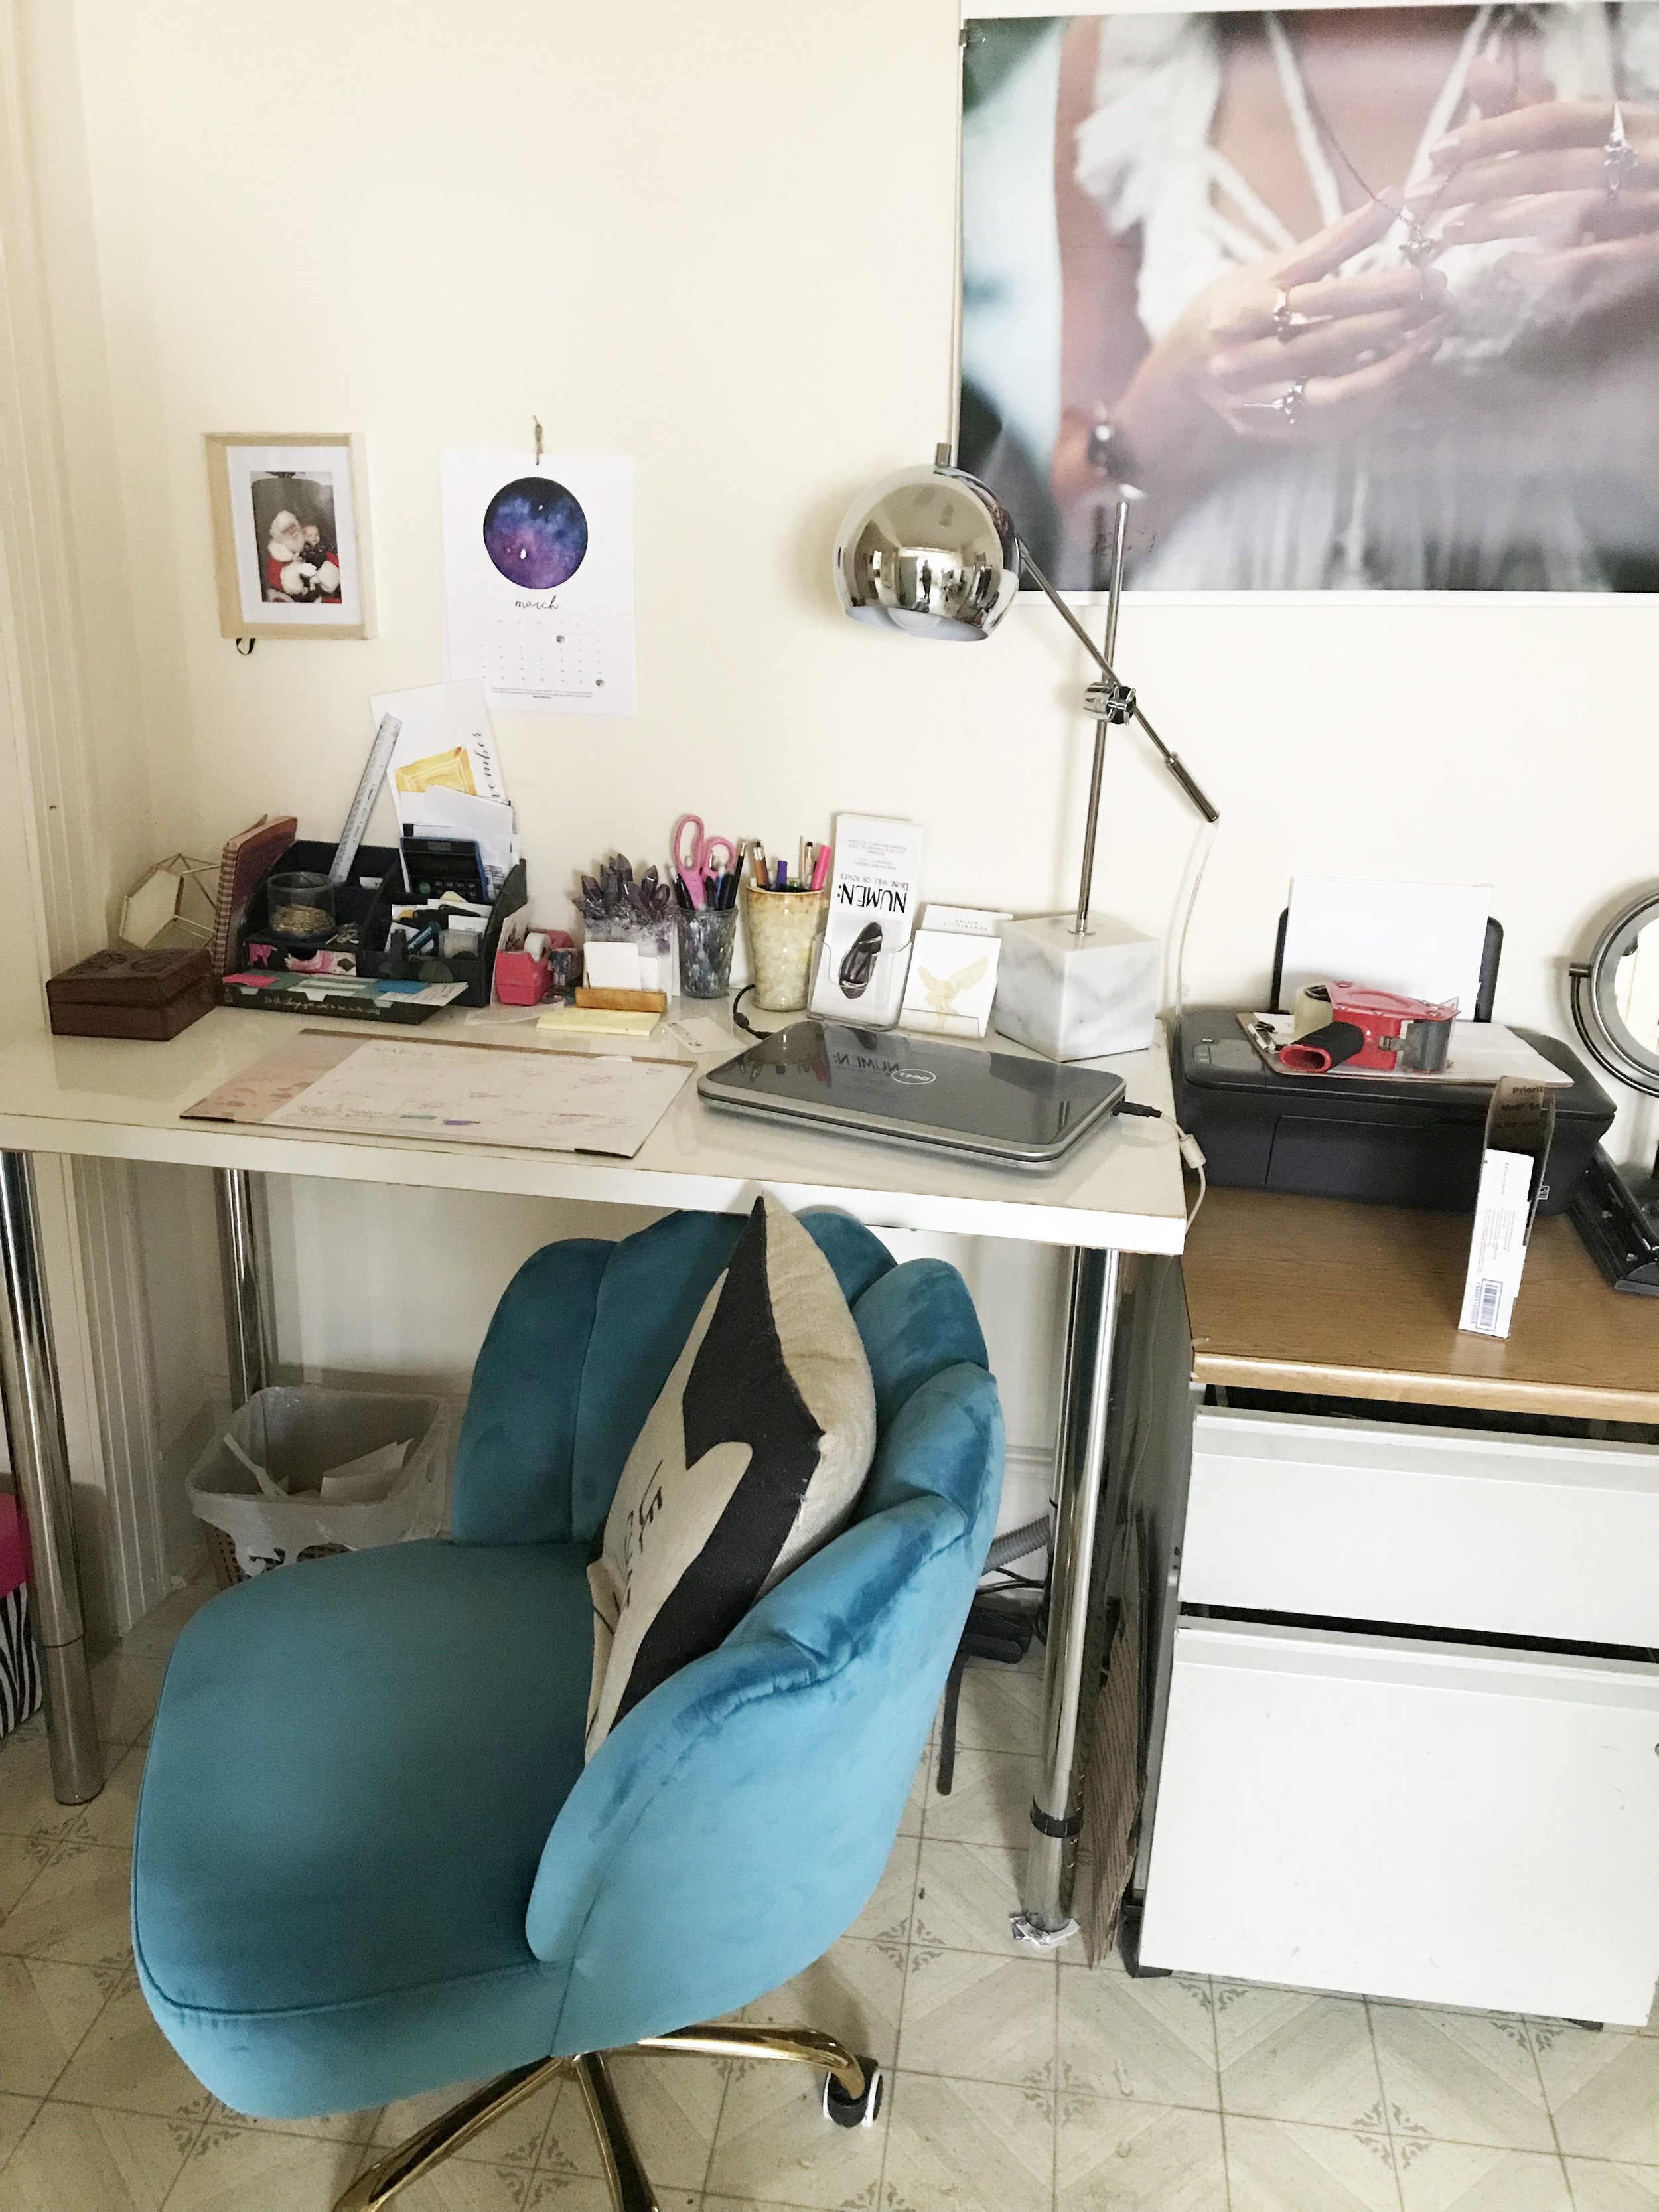 My 'office space' in our second kitchen, it's part of the mother in law suite of our 1950's house.